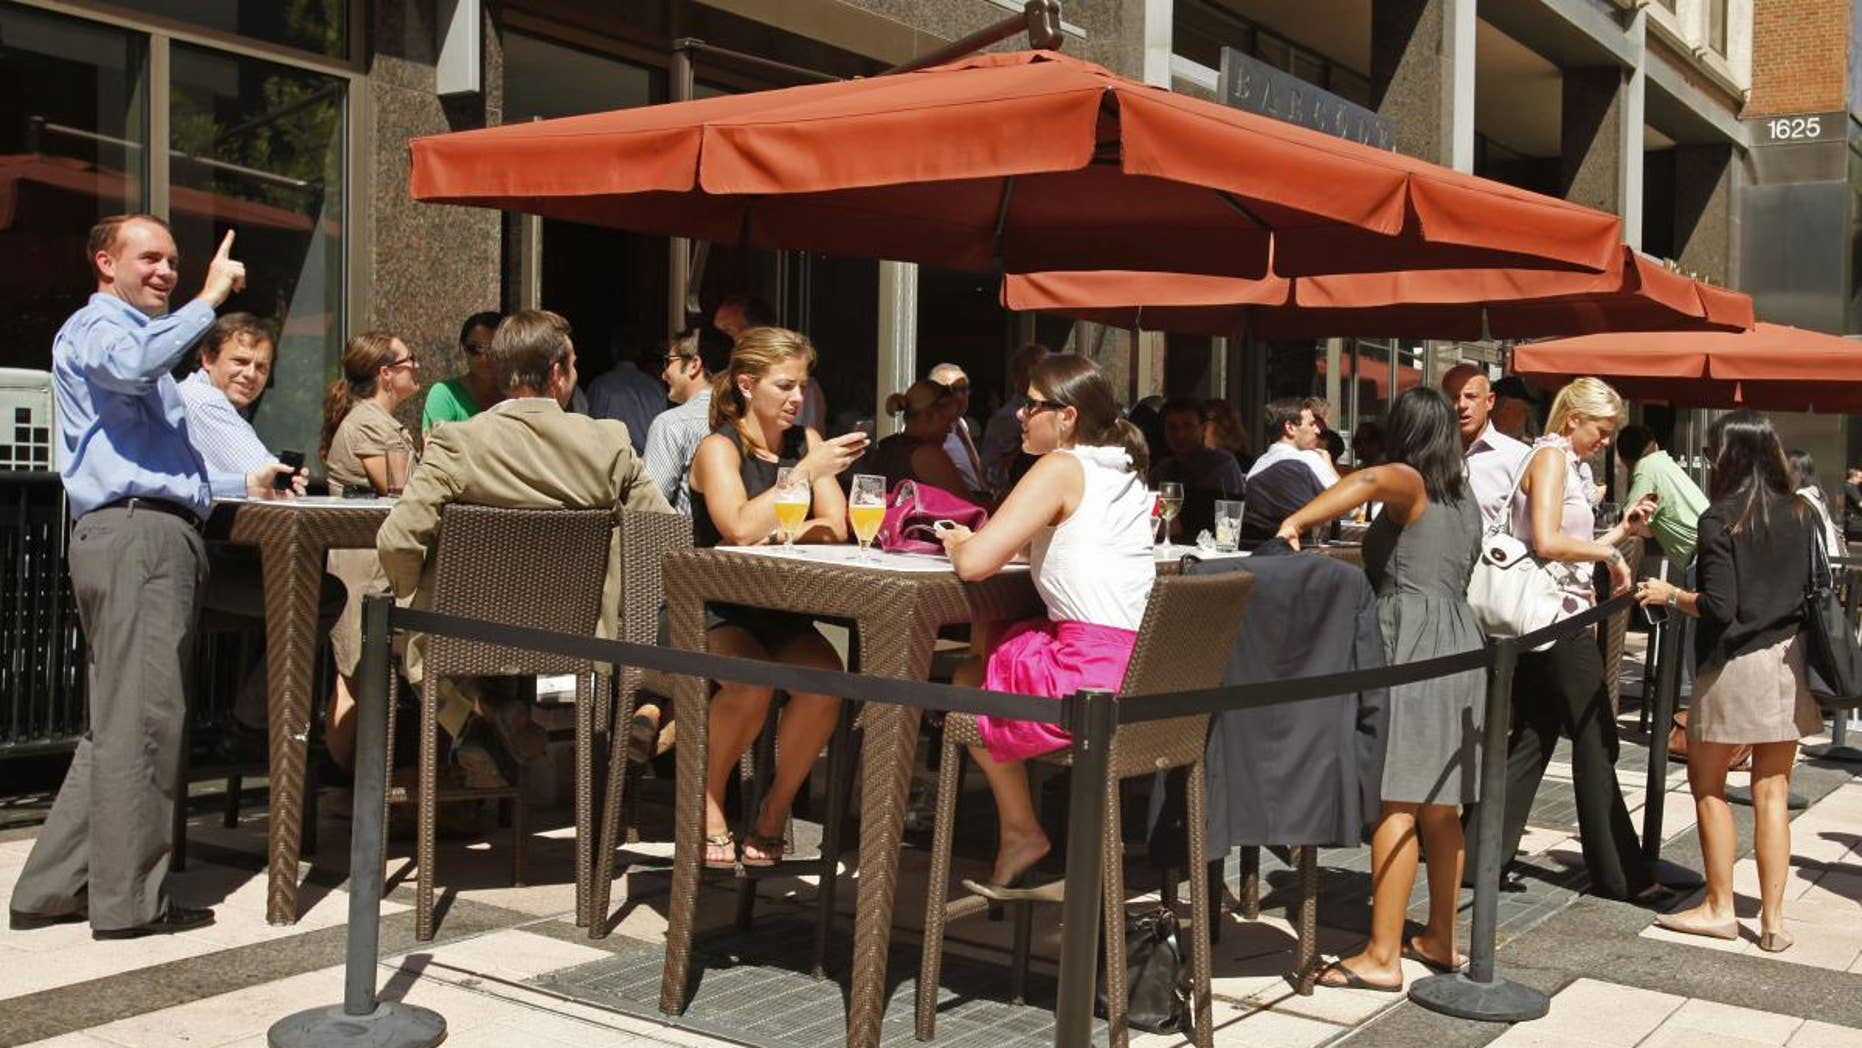 People have drinks at an outdoor cafe on L Street NW in Washington, Tuesday, Aug. 23, 2011, after an earthquake hit the Washington area, evacuating buildings. (AP Photo/Jacquelyn Martin)